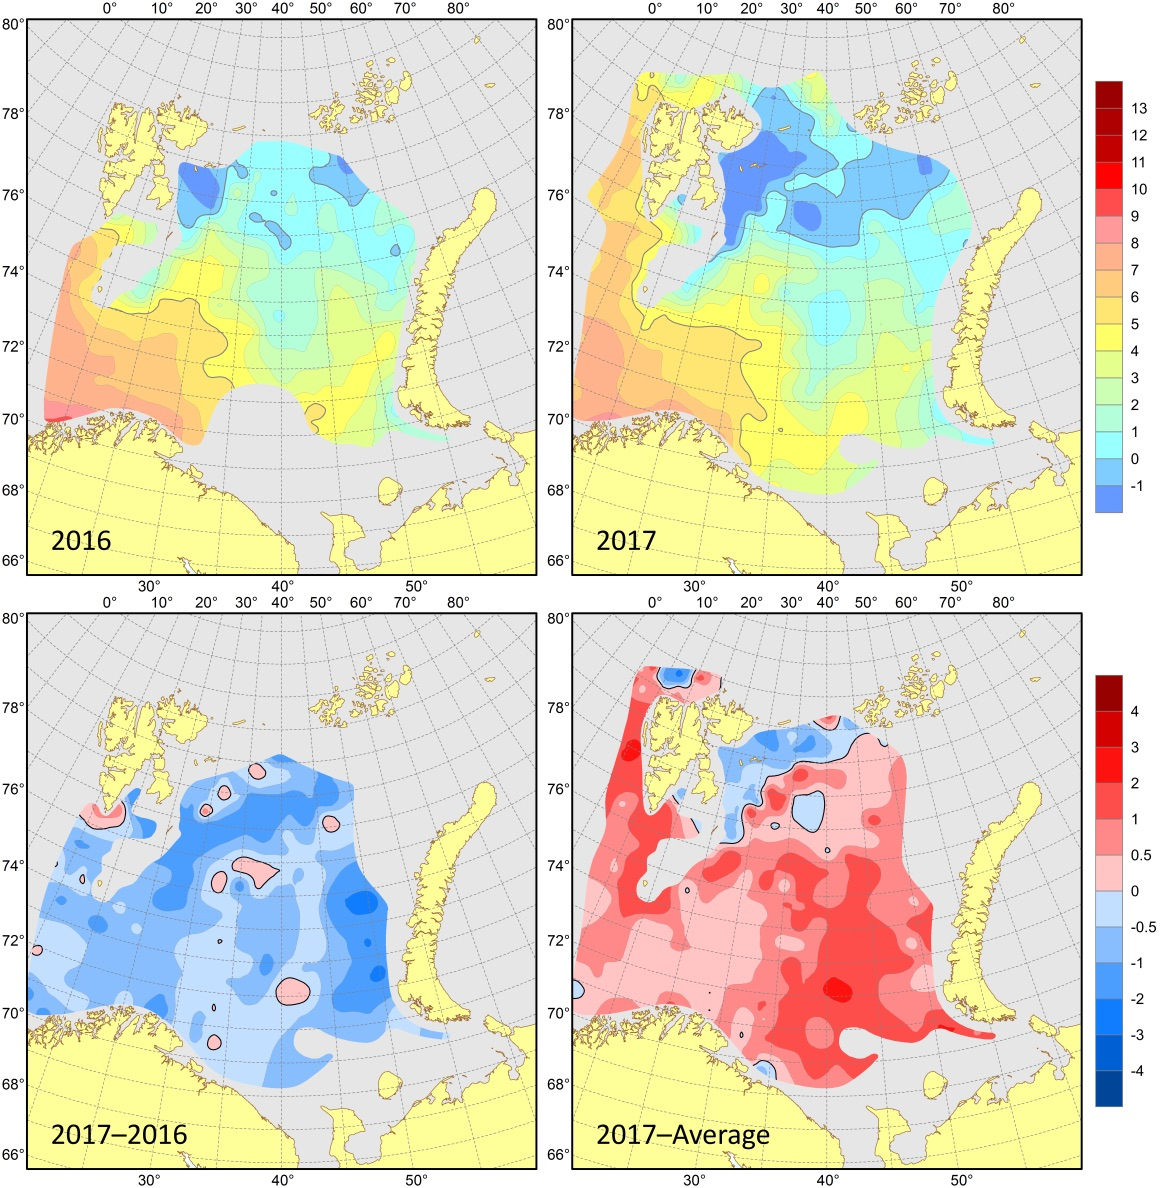 Figure 3.1.10. 100 m depth temperatures (°C) in August–October 2016 (upper left) and 2017 (upper right), their differences between 2017 and 2016 (lower left, °C) and anomalies in August–October 2017 (lower right, °C).